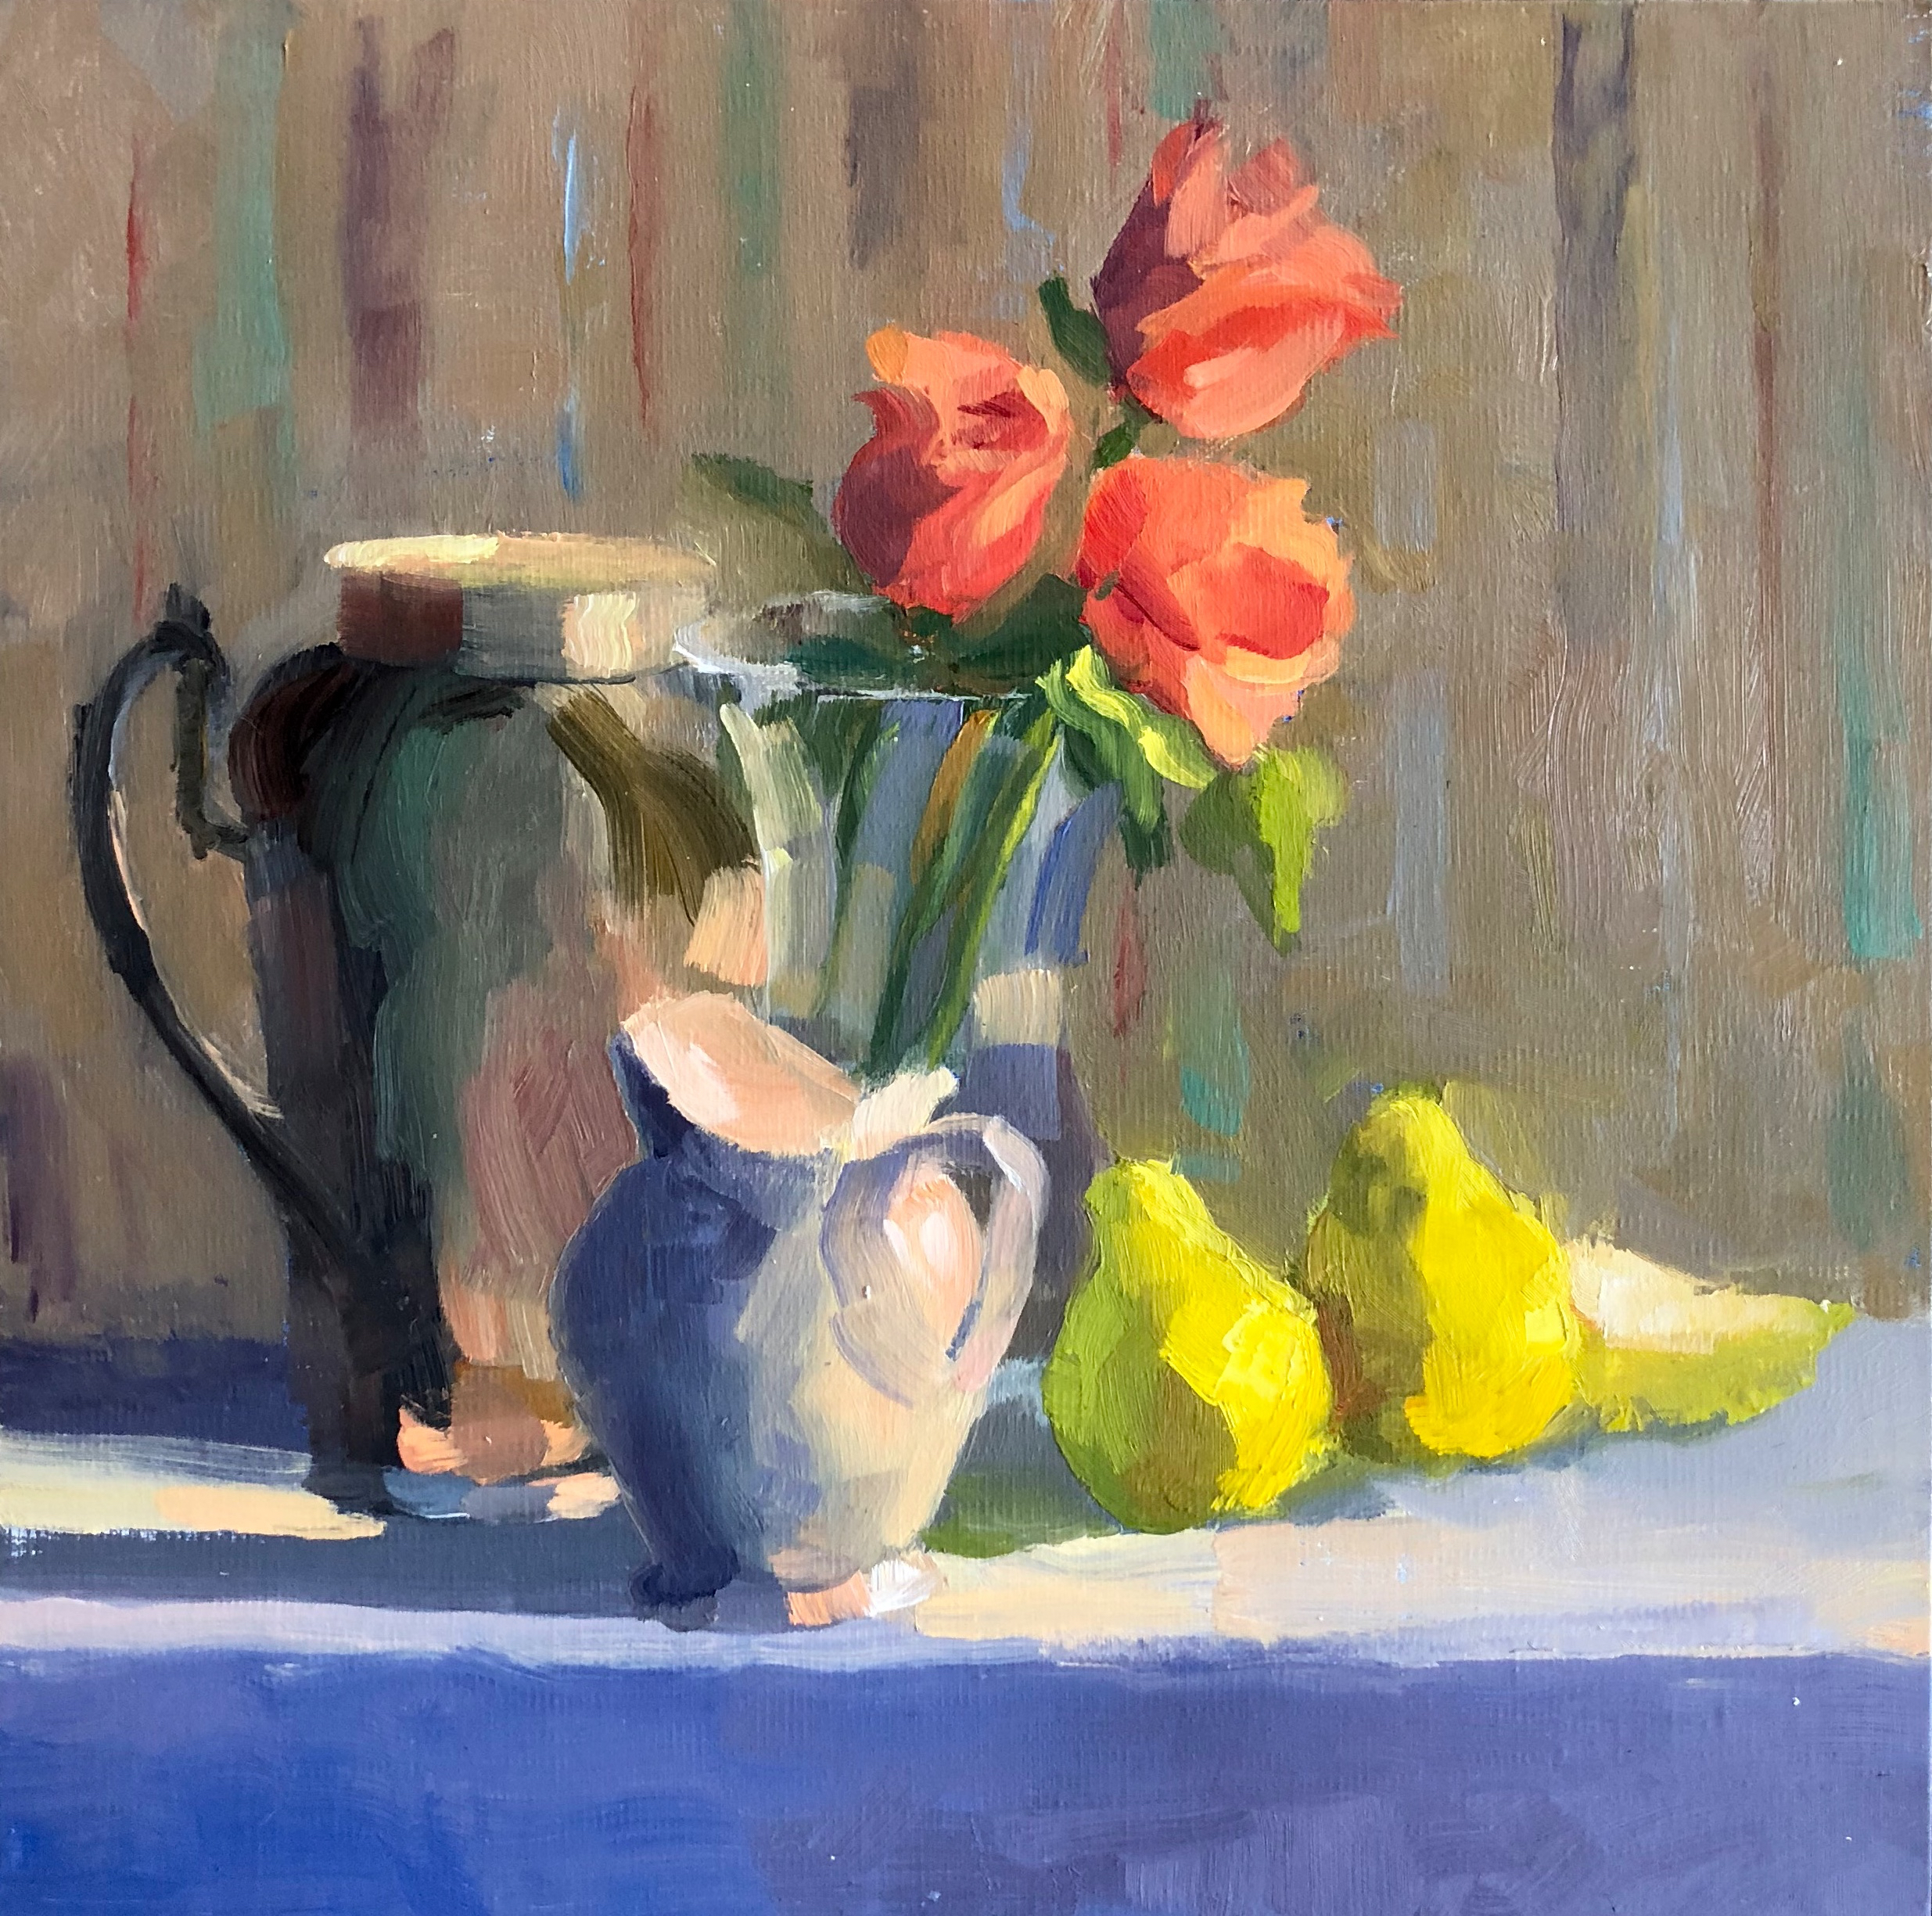 Pitchers with Roses and Pears